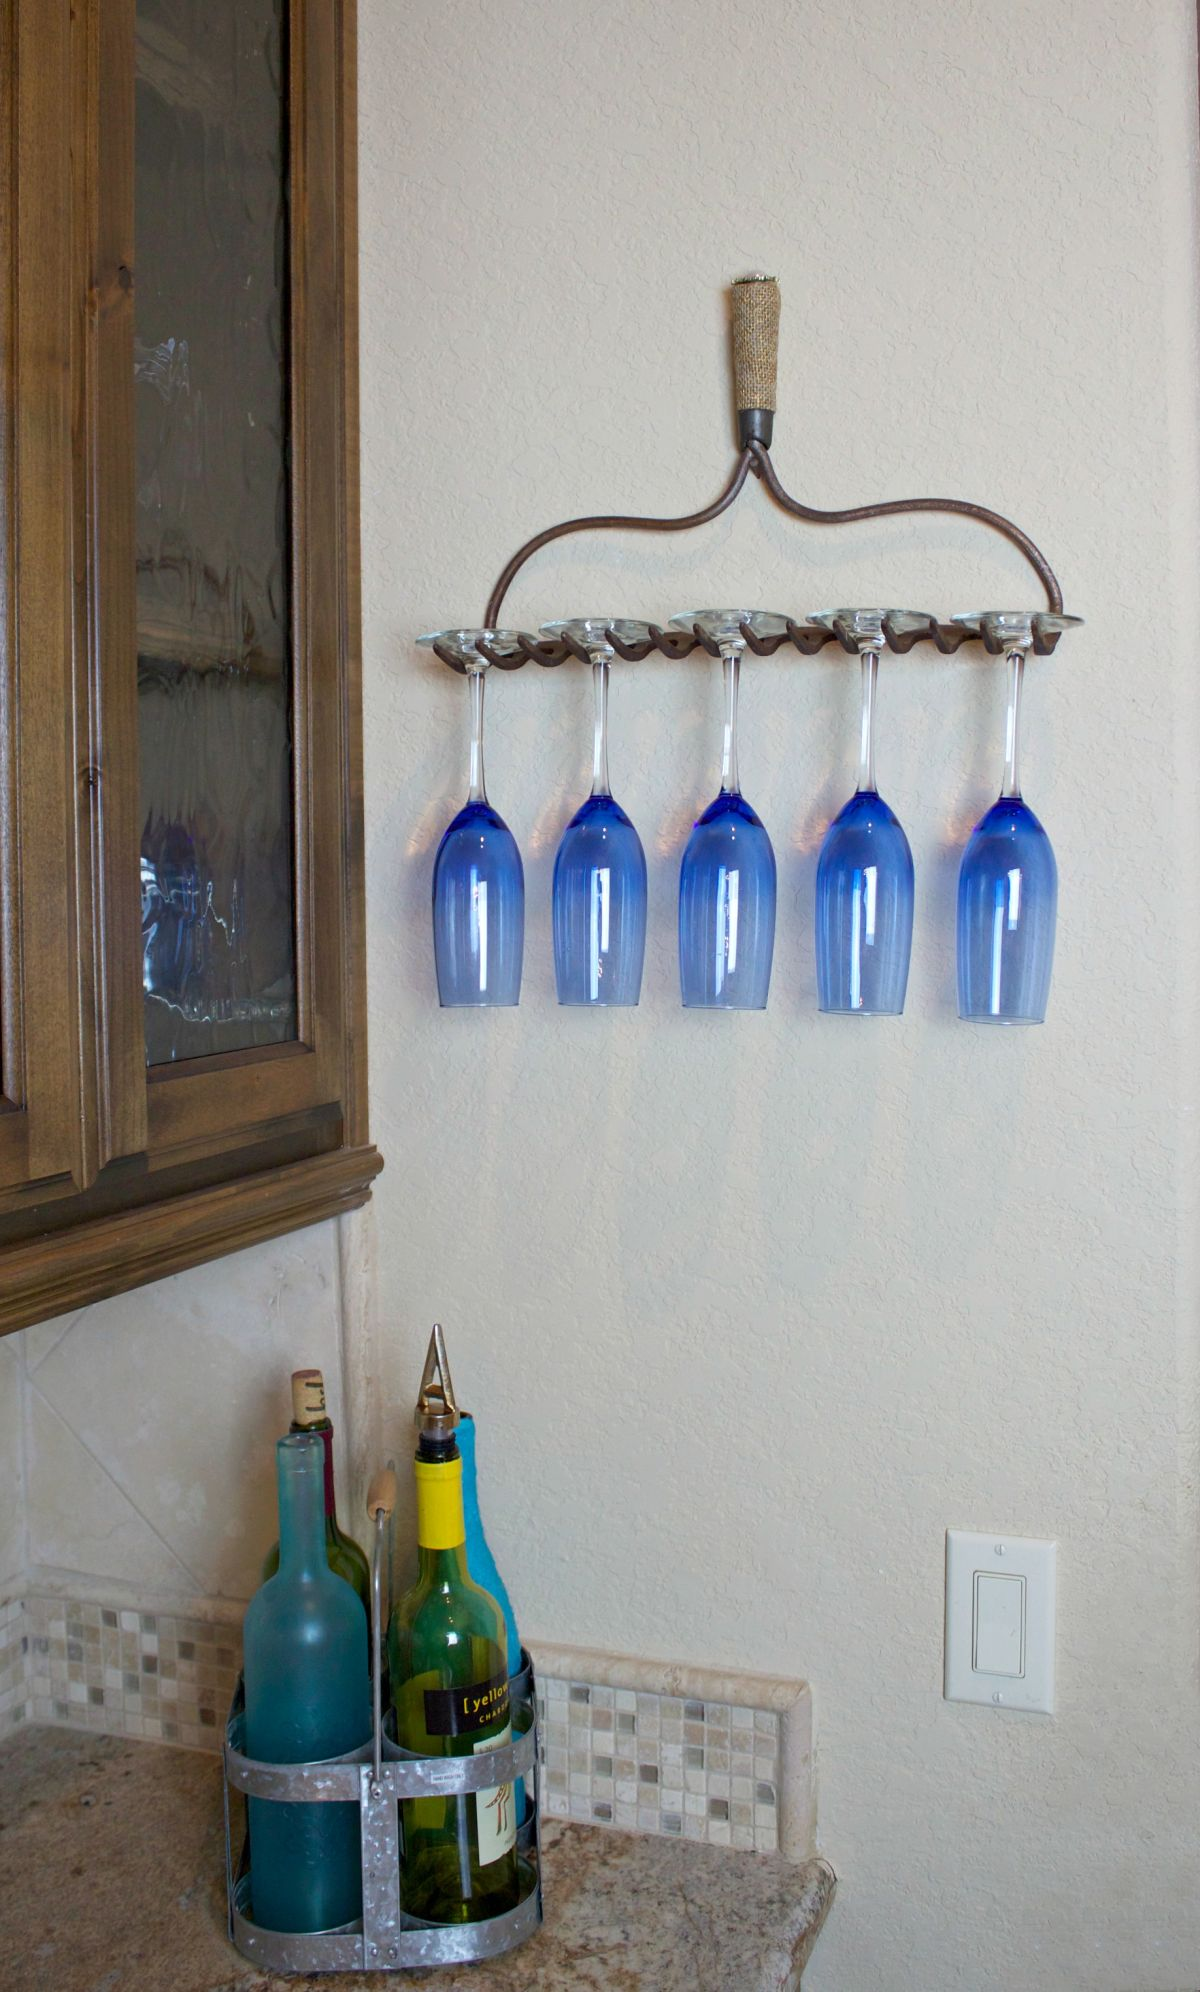 Turn a Rake into a Wine Glass Holder - Glue Edges